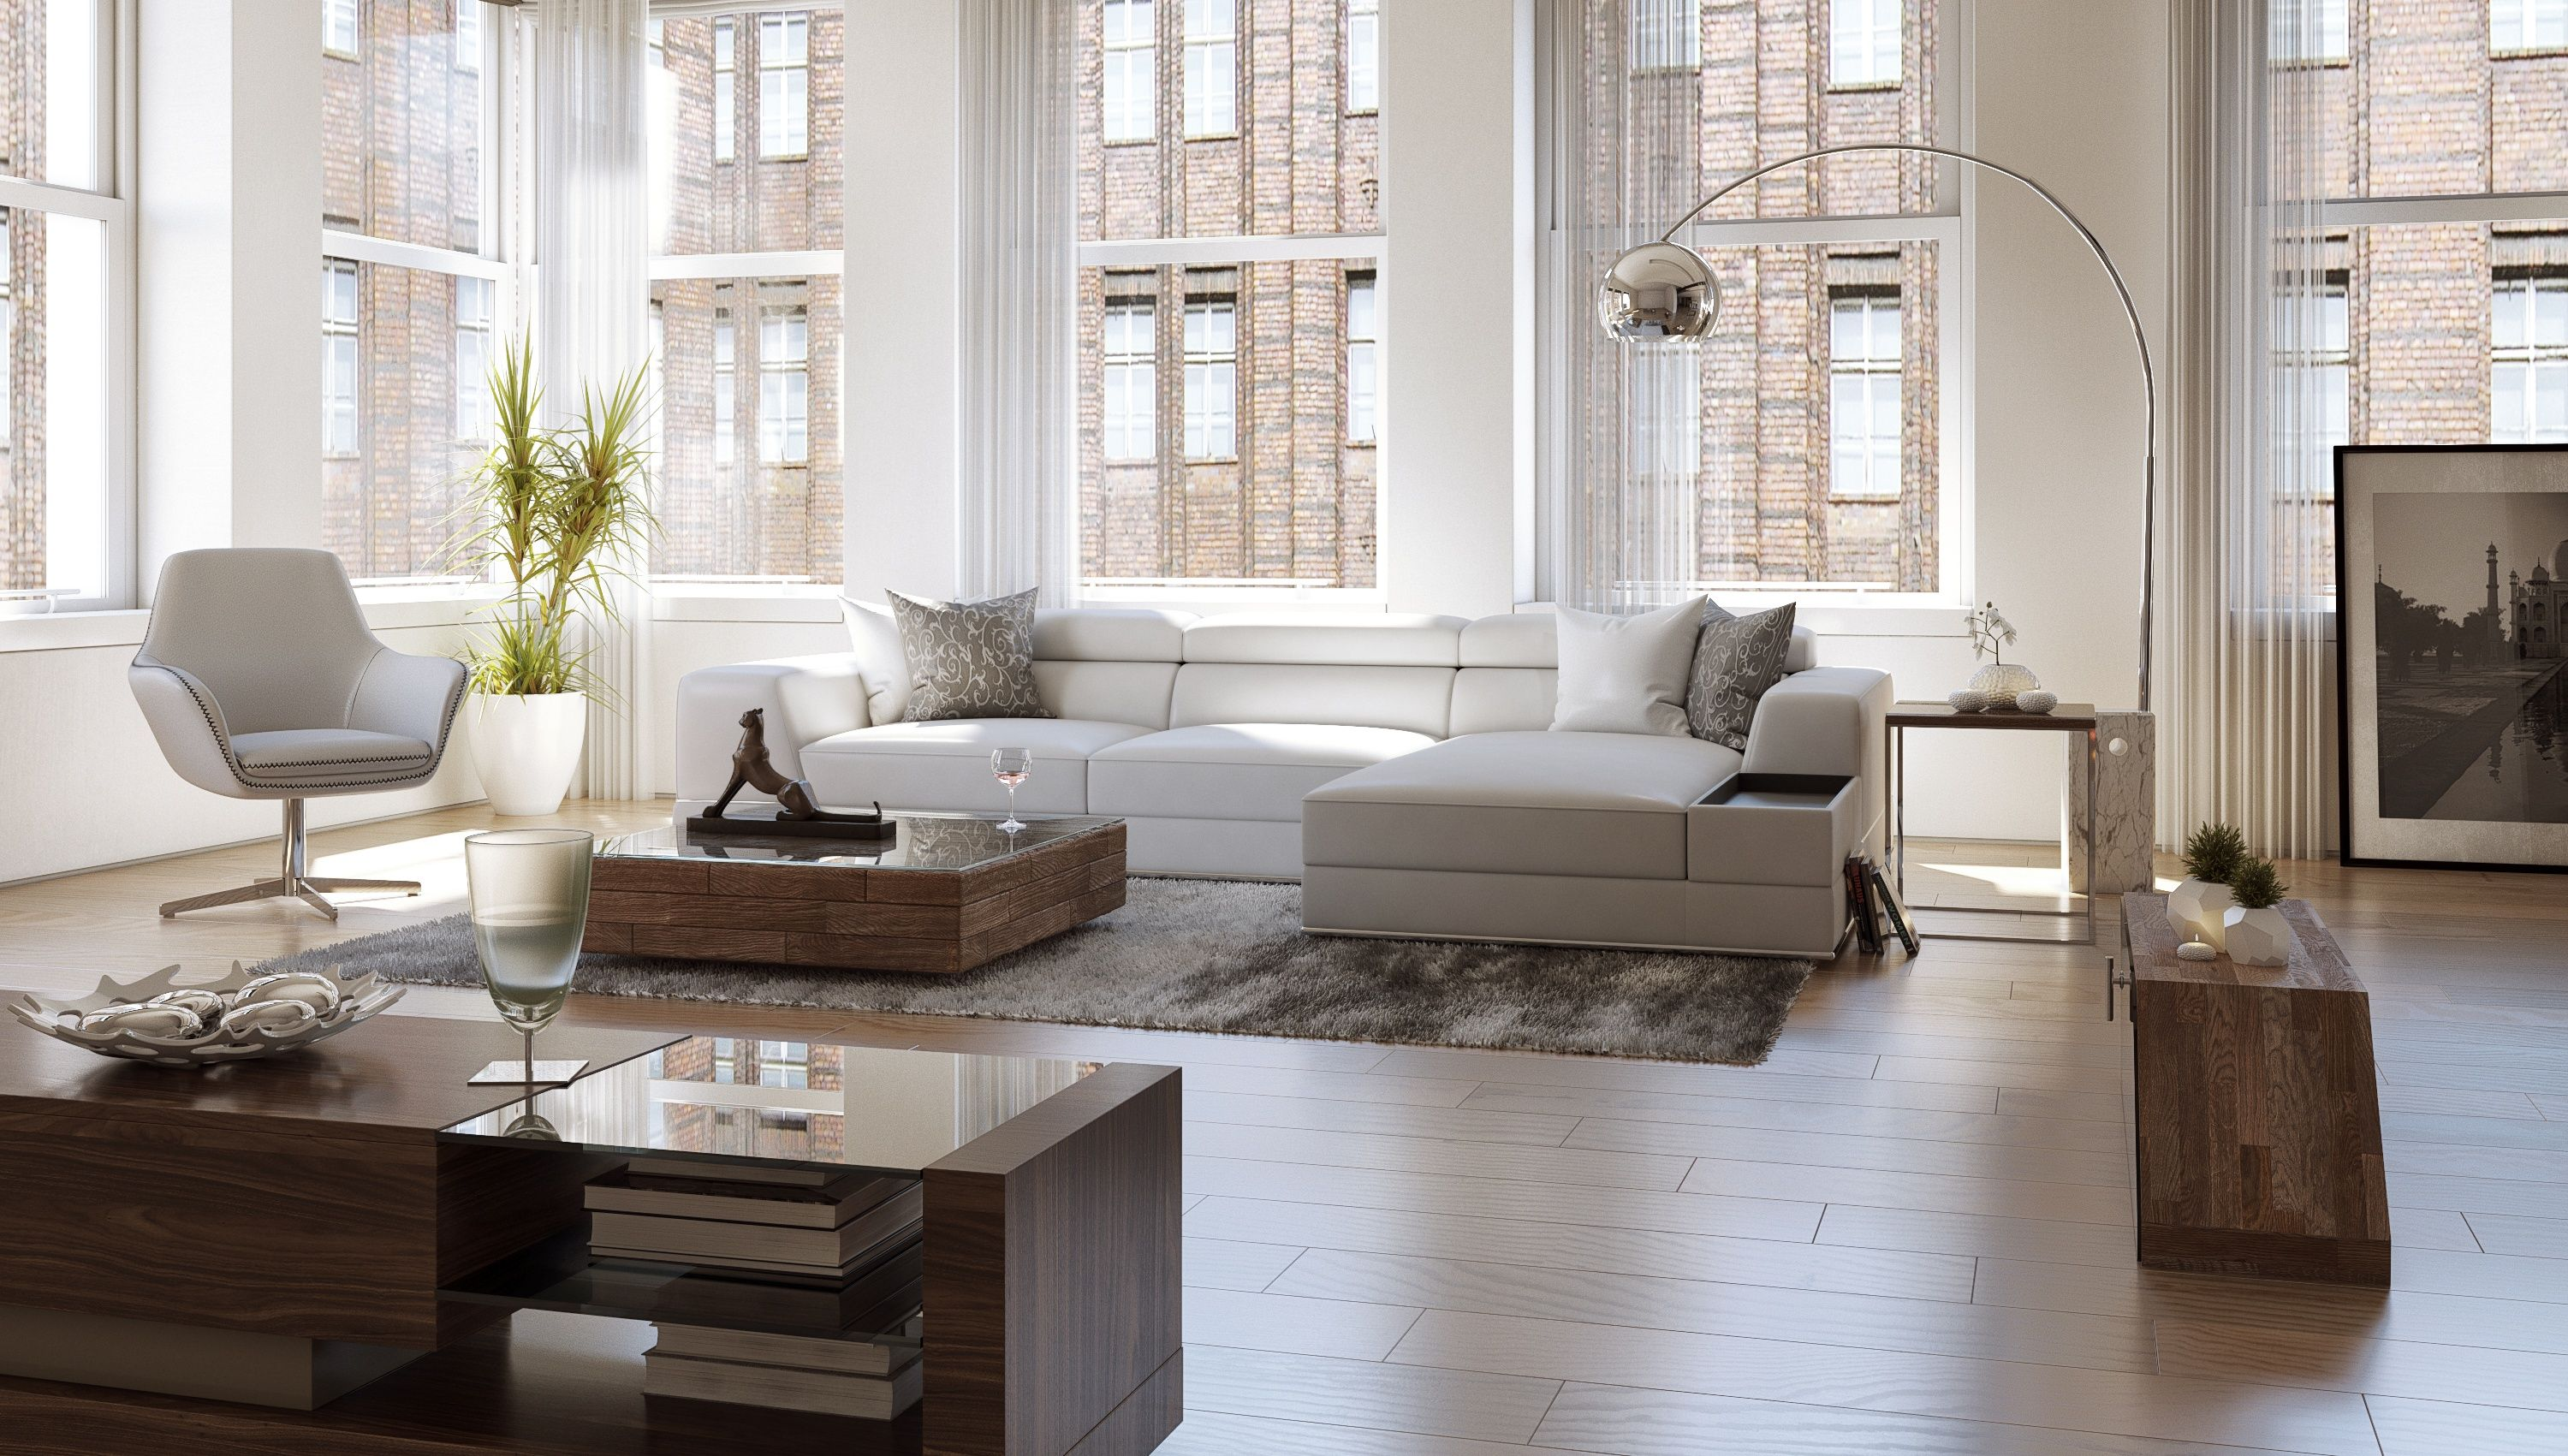 Bergamo Sectional Leather Modern Sofa Gray Best Sofas Nyc Contemporary And Furniture Stores For Your Home At